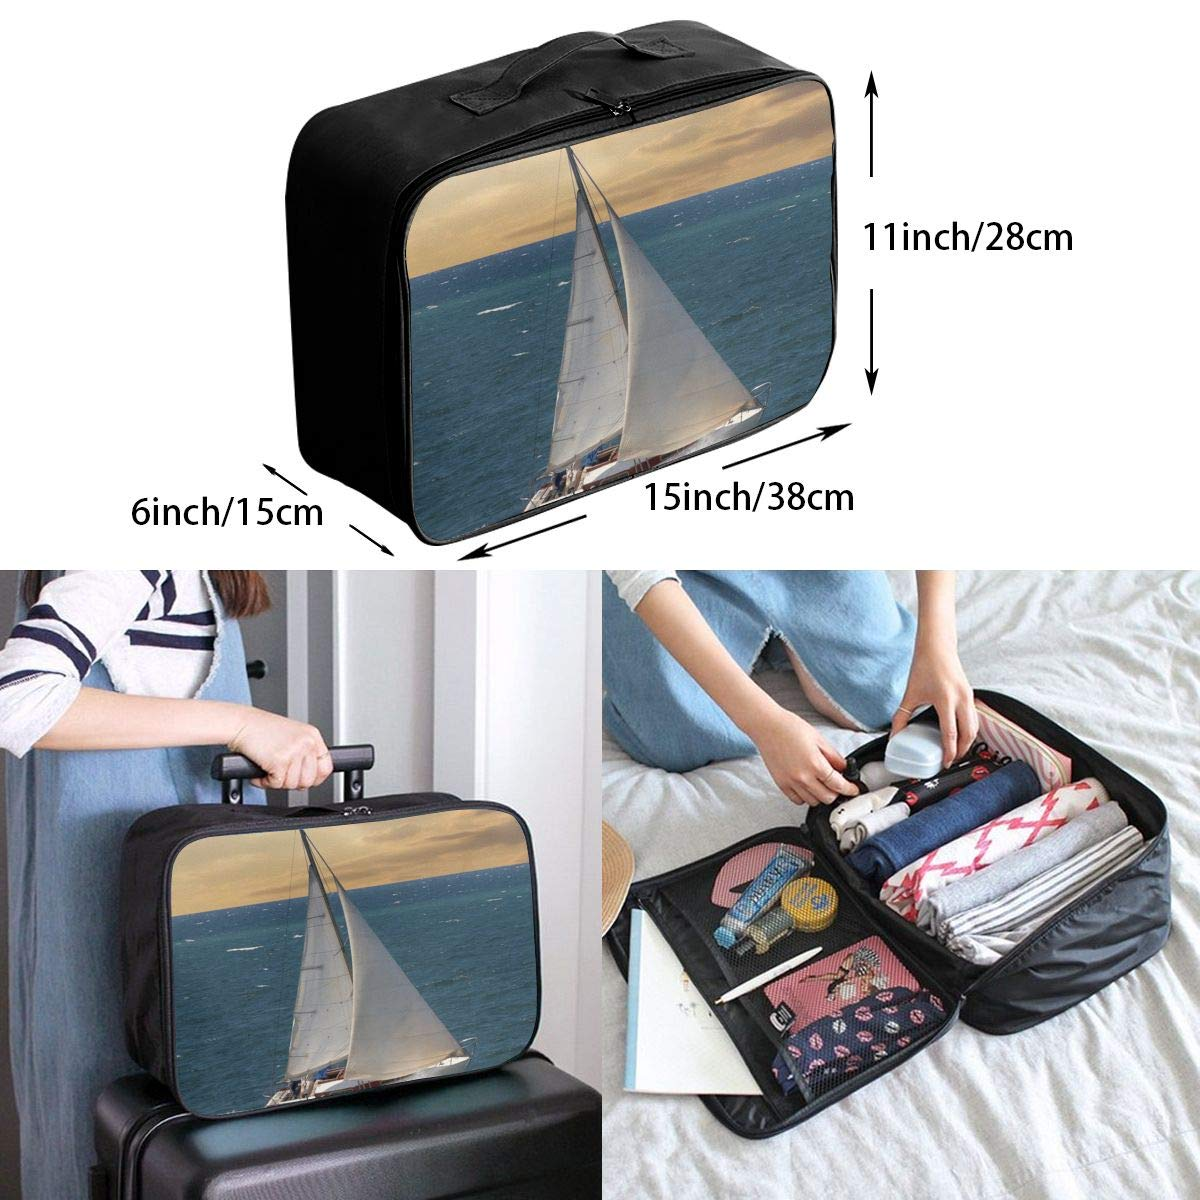 Travel Luggage Duffle Bag Lightweight Portable Handbag Sailboat Ocean Large Capacity Waterproof Foldable Storage Tote